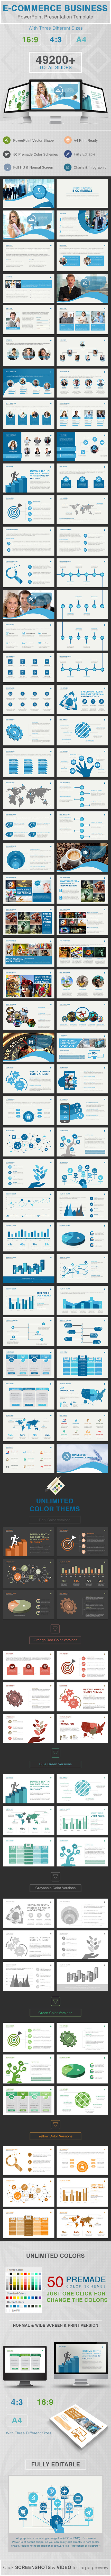 GraphicRiver E-Commerce Business Powerpoint 11446077